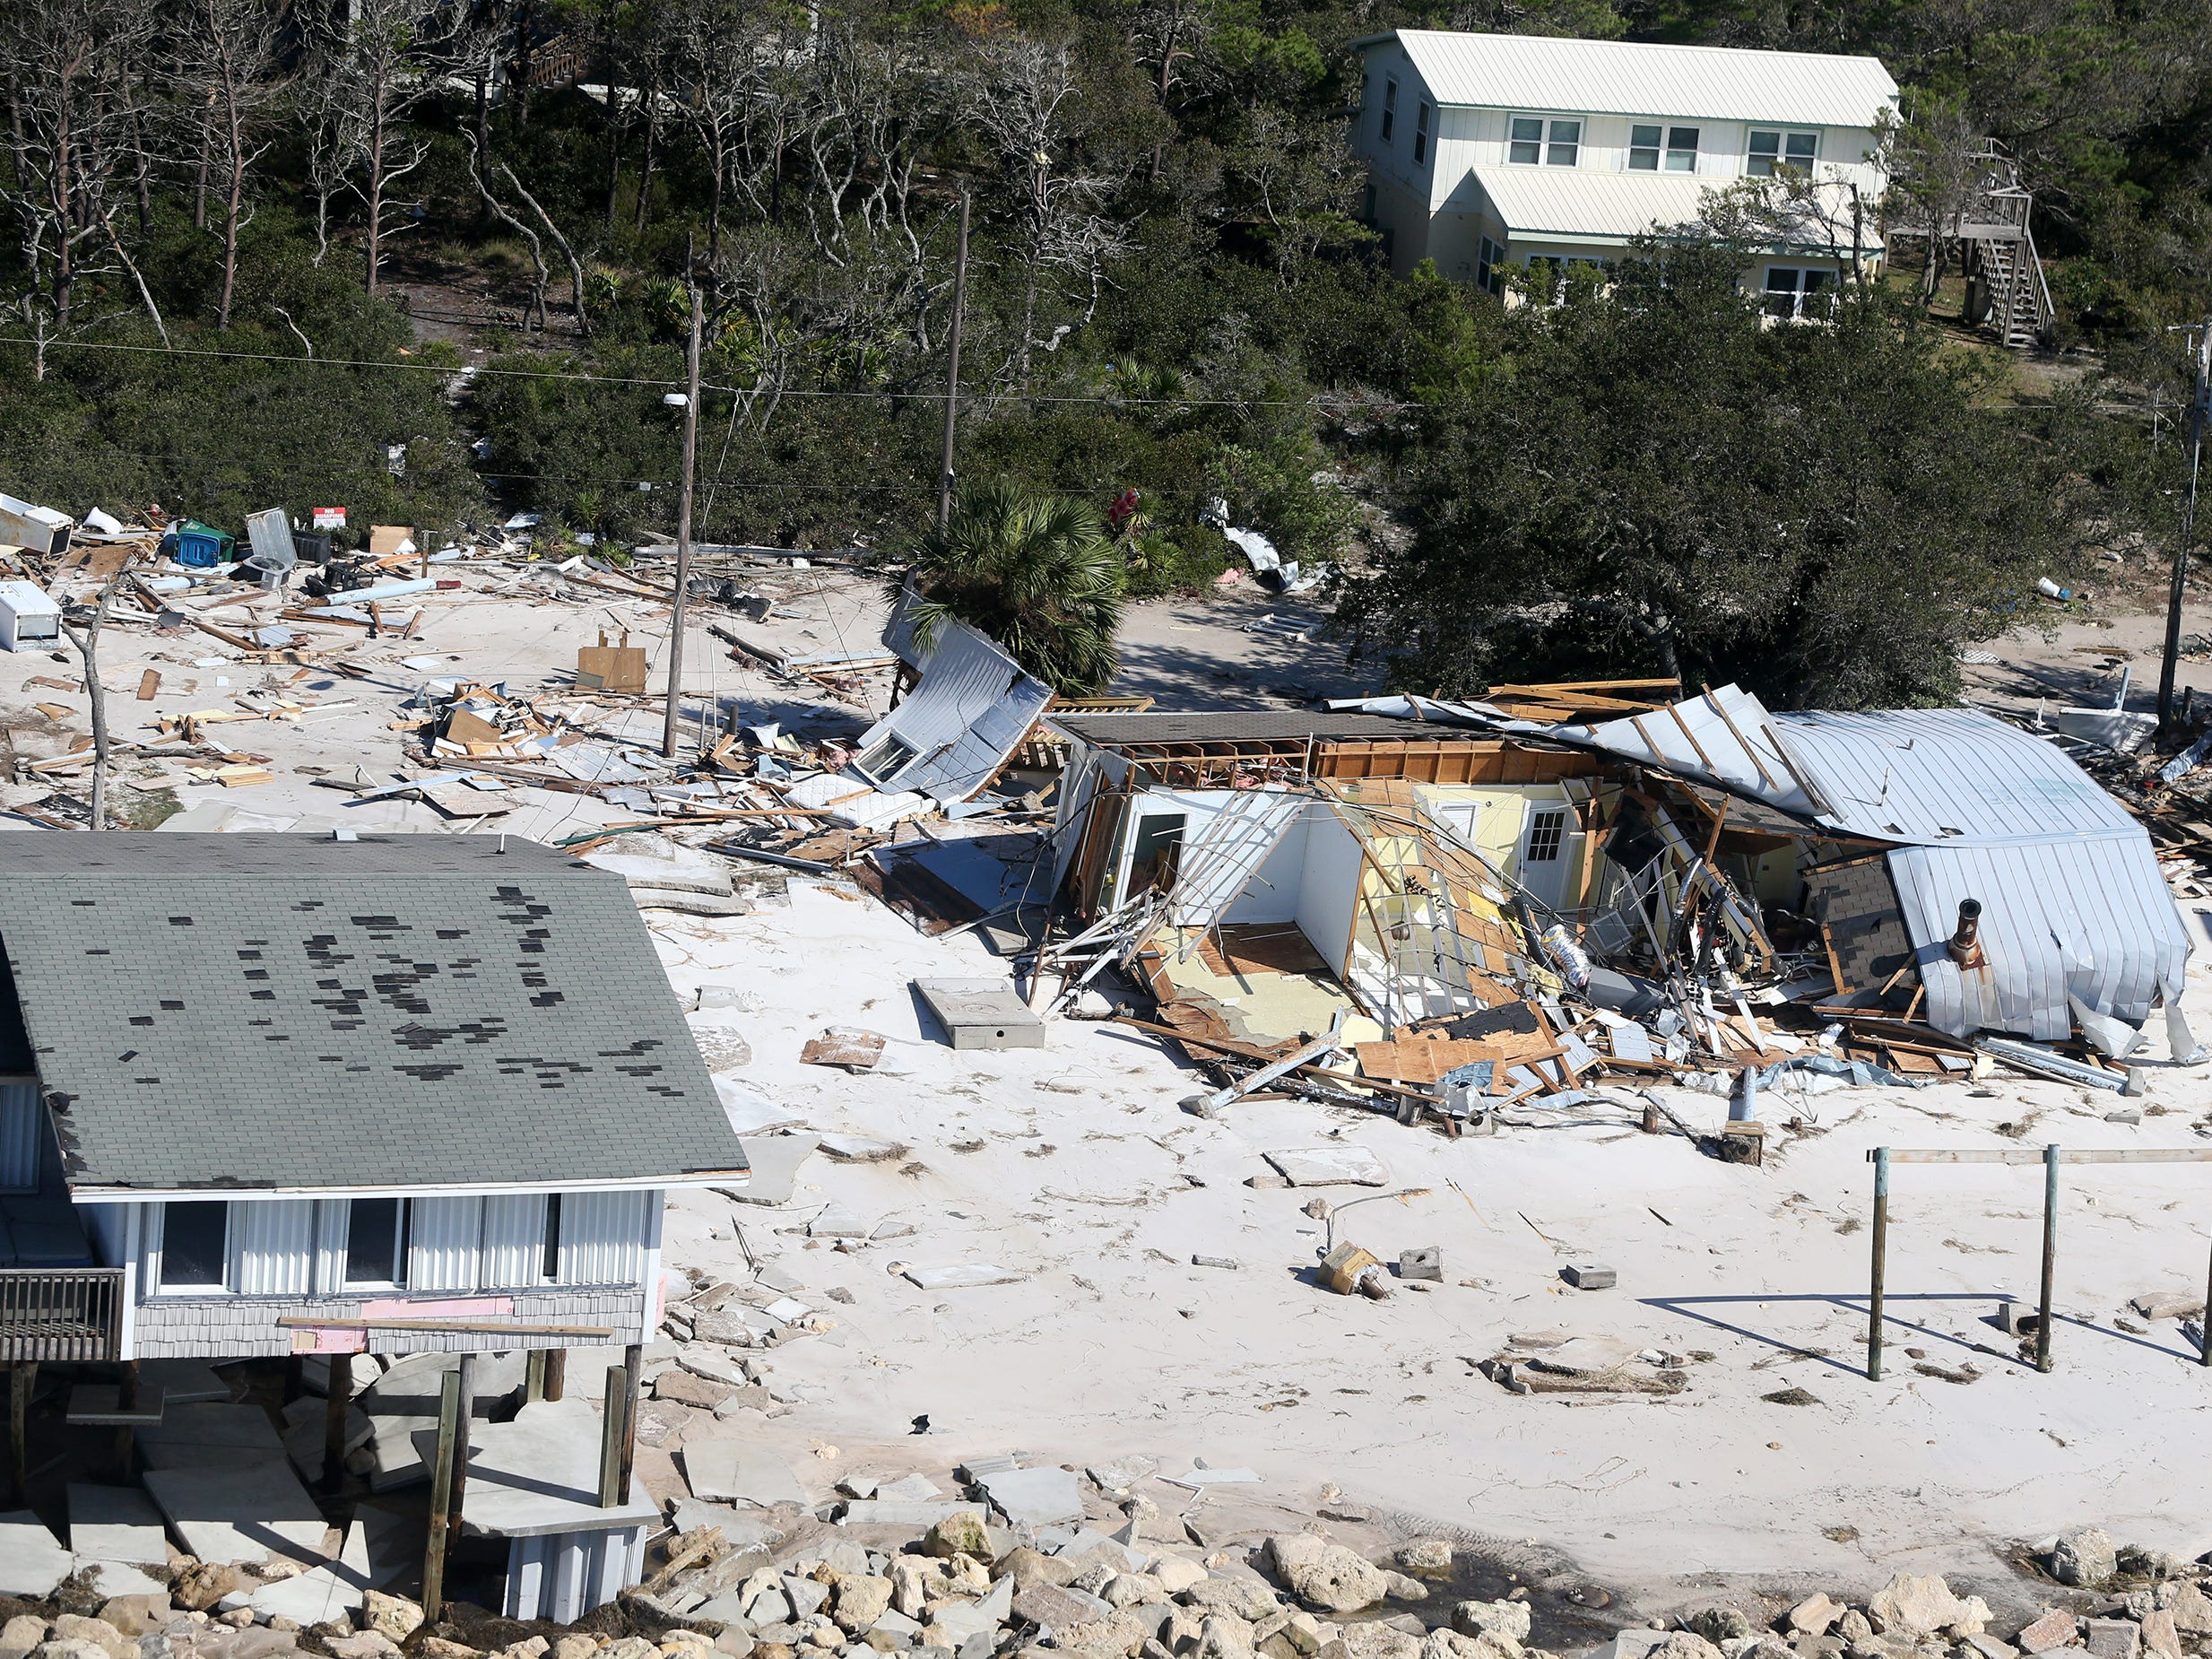 Hurricane Michael damaged several homes on Alligator Point in Franklin County, Florida.